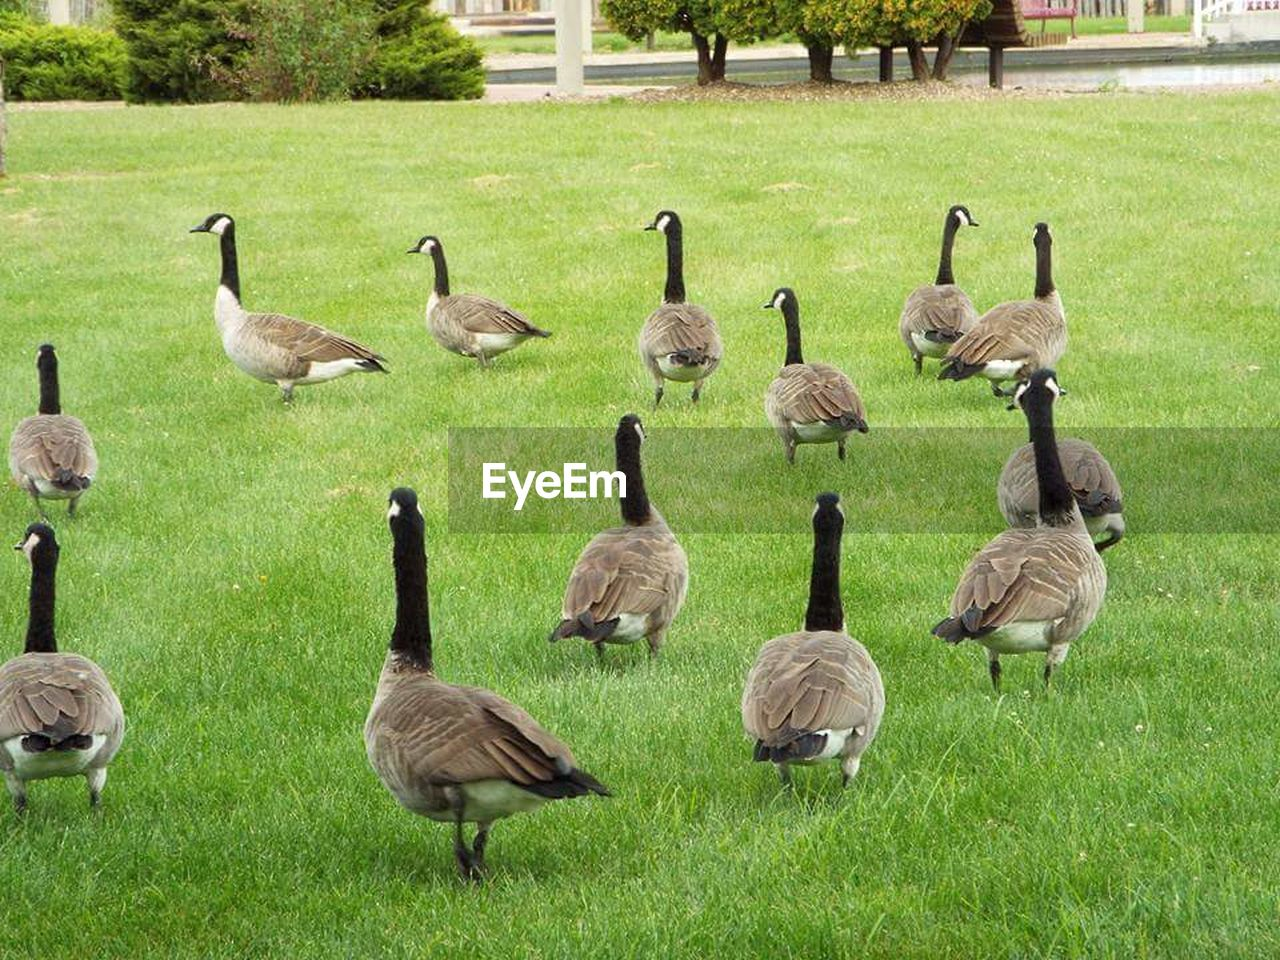 grass, bird, goose, animals in the wild, animal themes, animal wildlife, large group of animals, canada goose, greylag goose, nature, outdoors, green color, day, gosling, geese, no people, beauty in nature